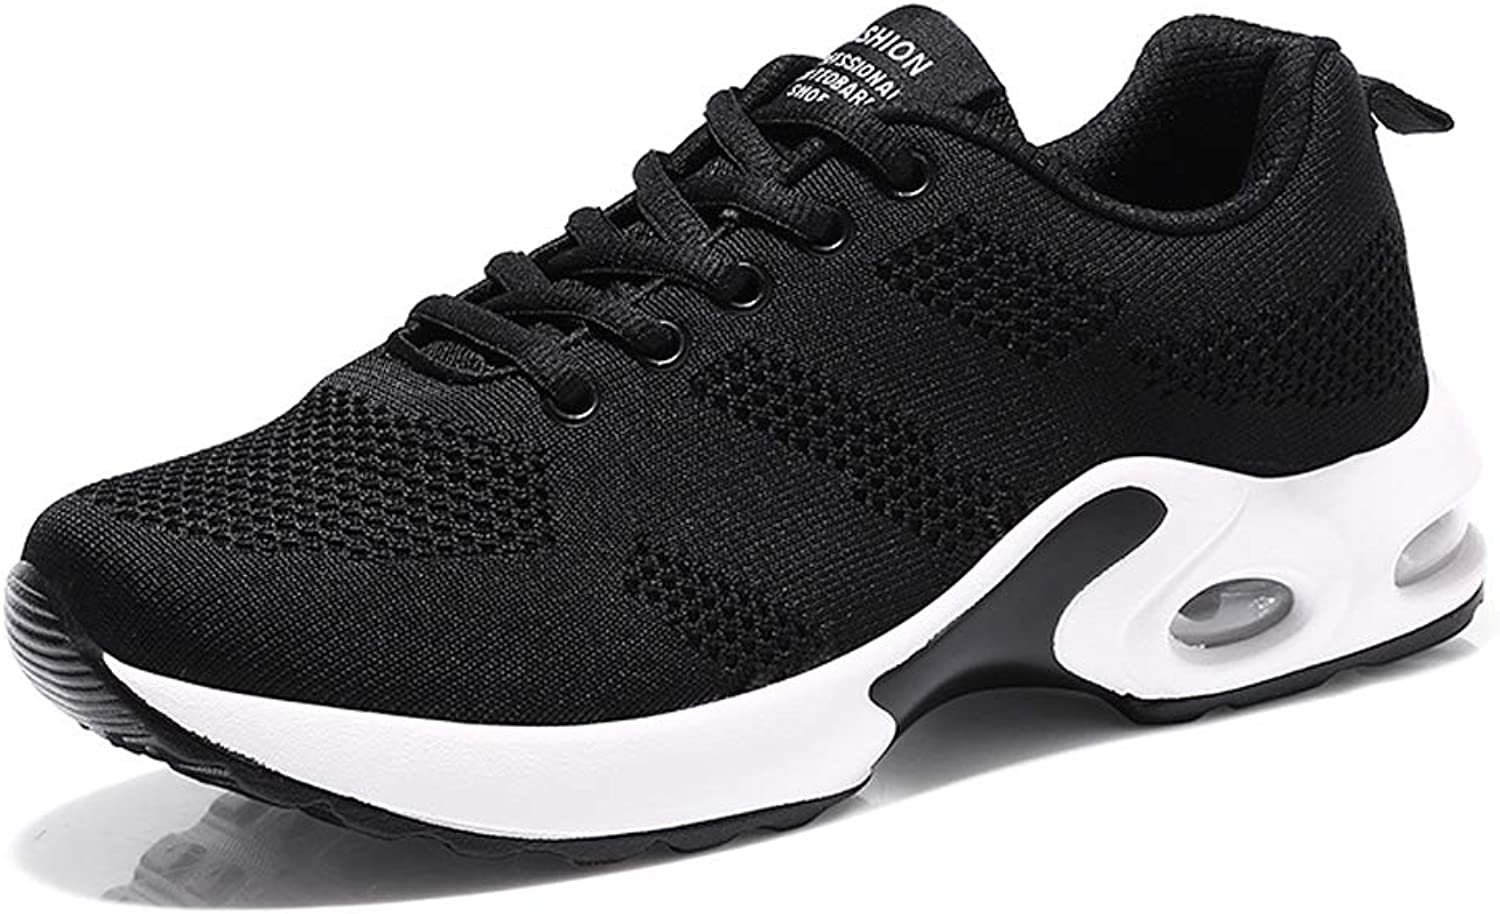 CN-Porter Women's Breathable Walking shoes Lightweight Athletic Tennis Running shoes